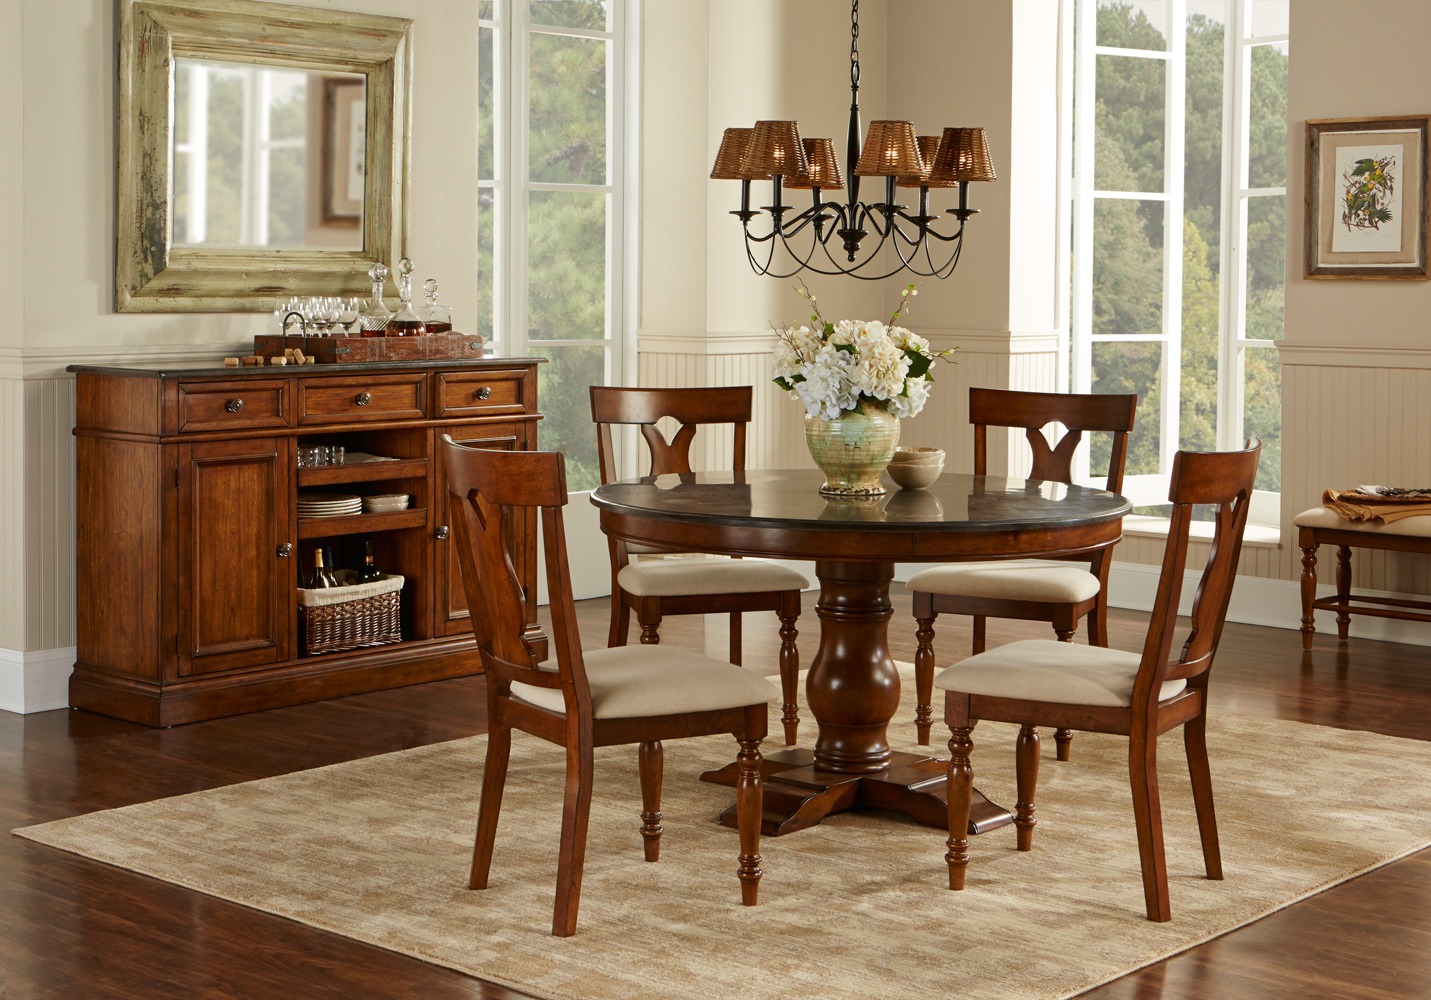 100 Dining Room Sets With China Cabinet